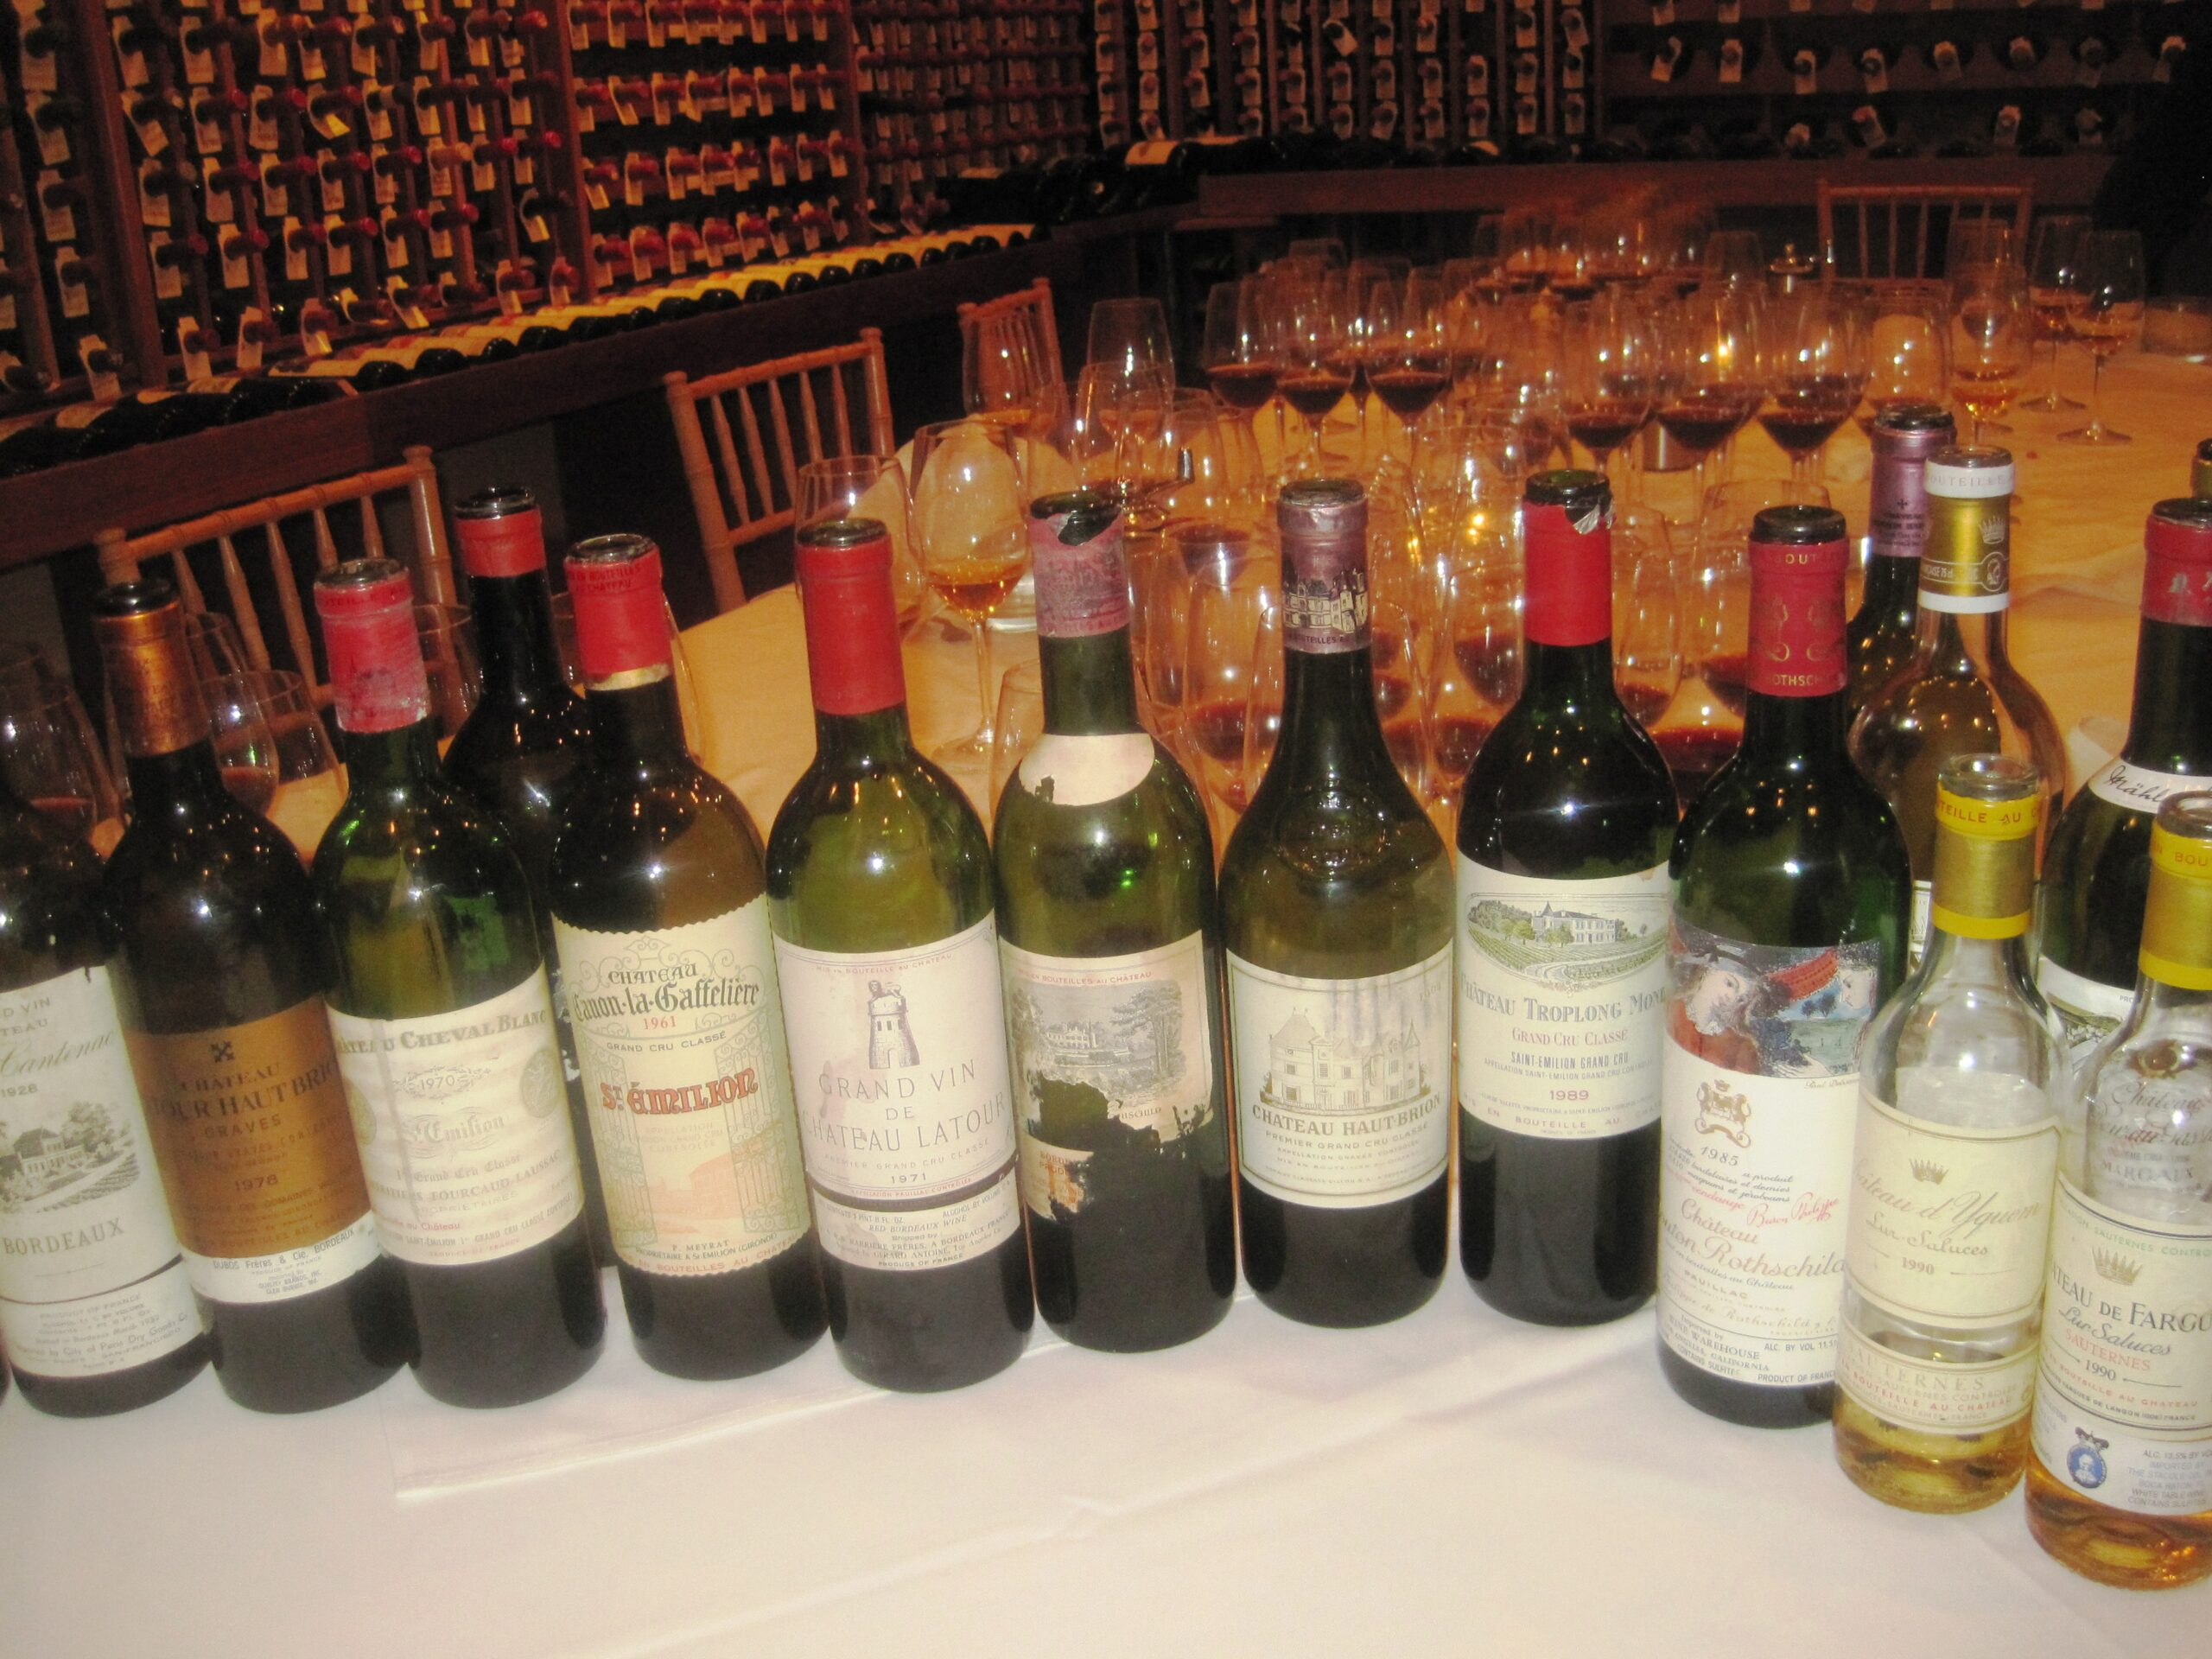 7 Blind Men tastes 7 decades of Bordeaux wine from the 20's – 80's!